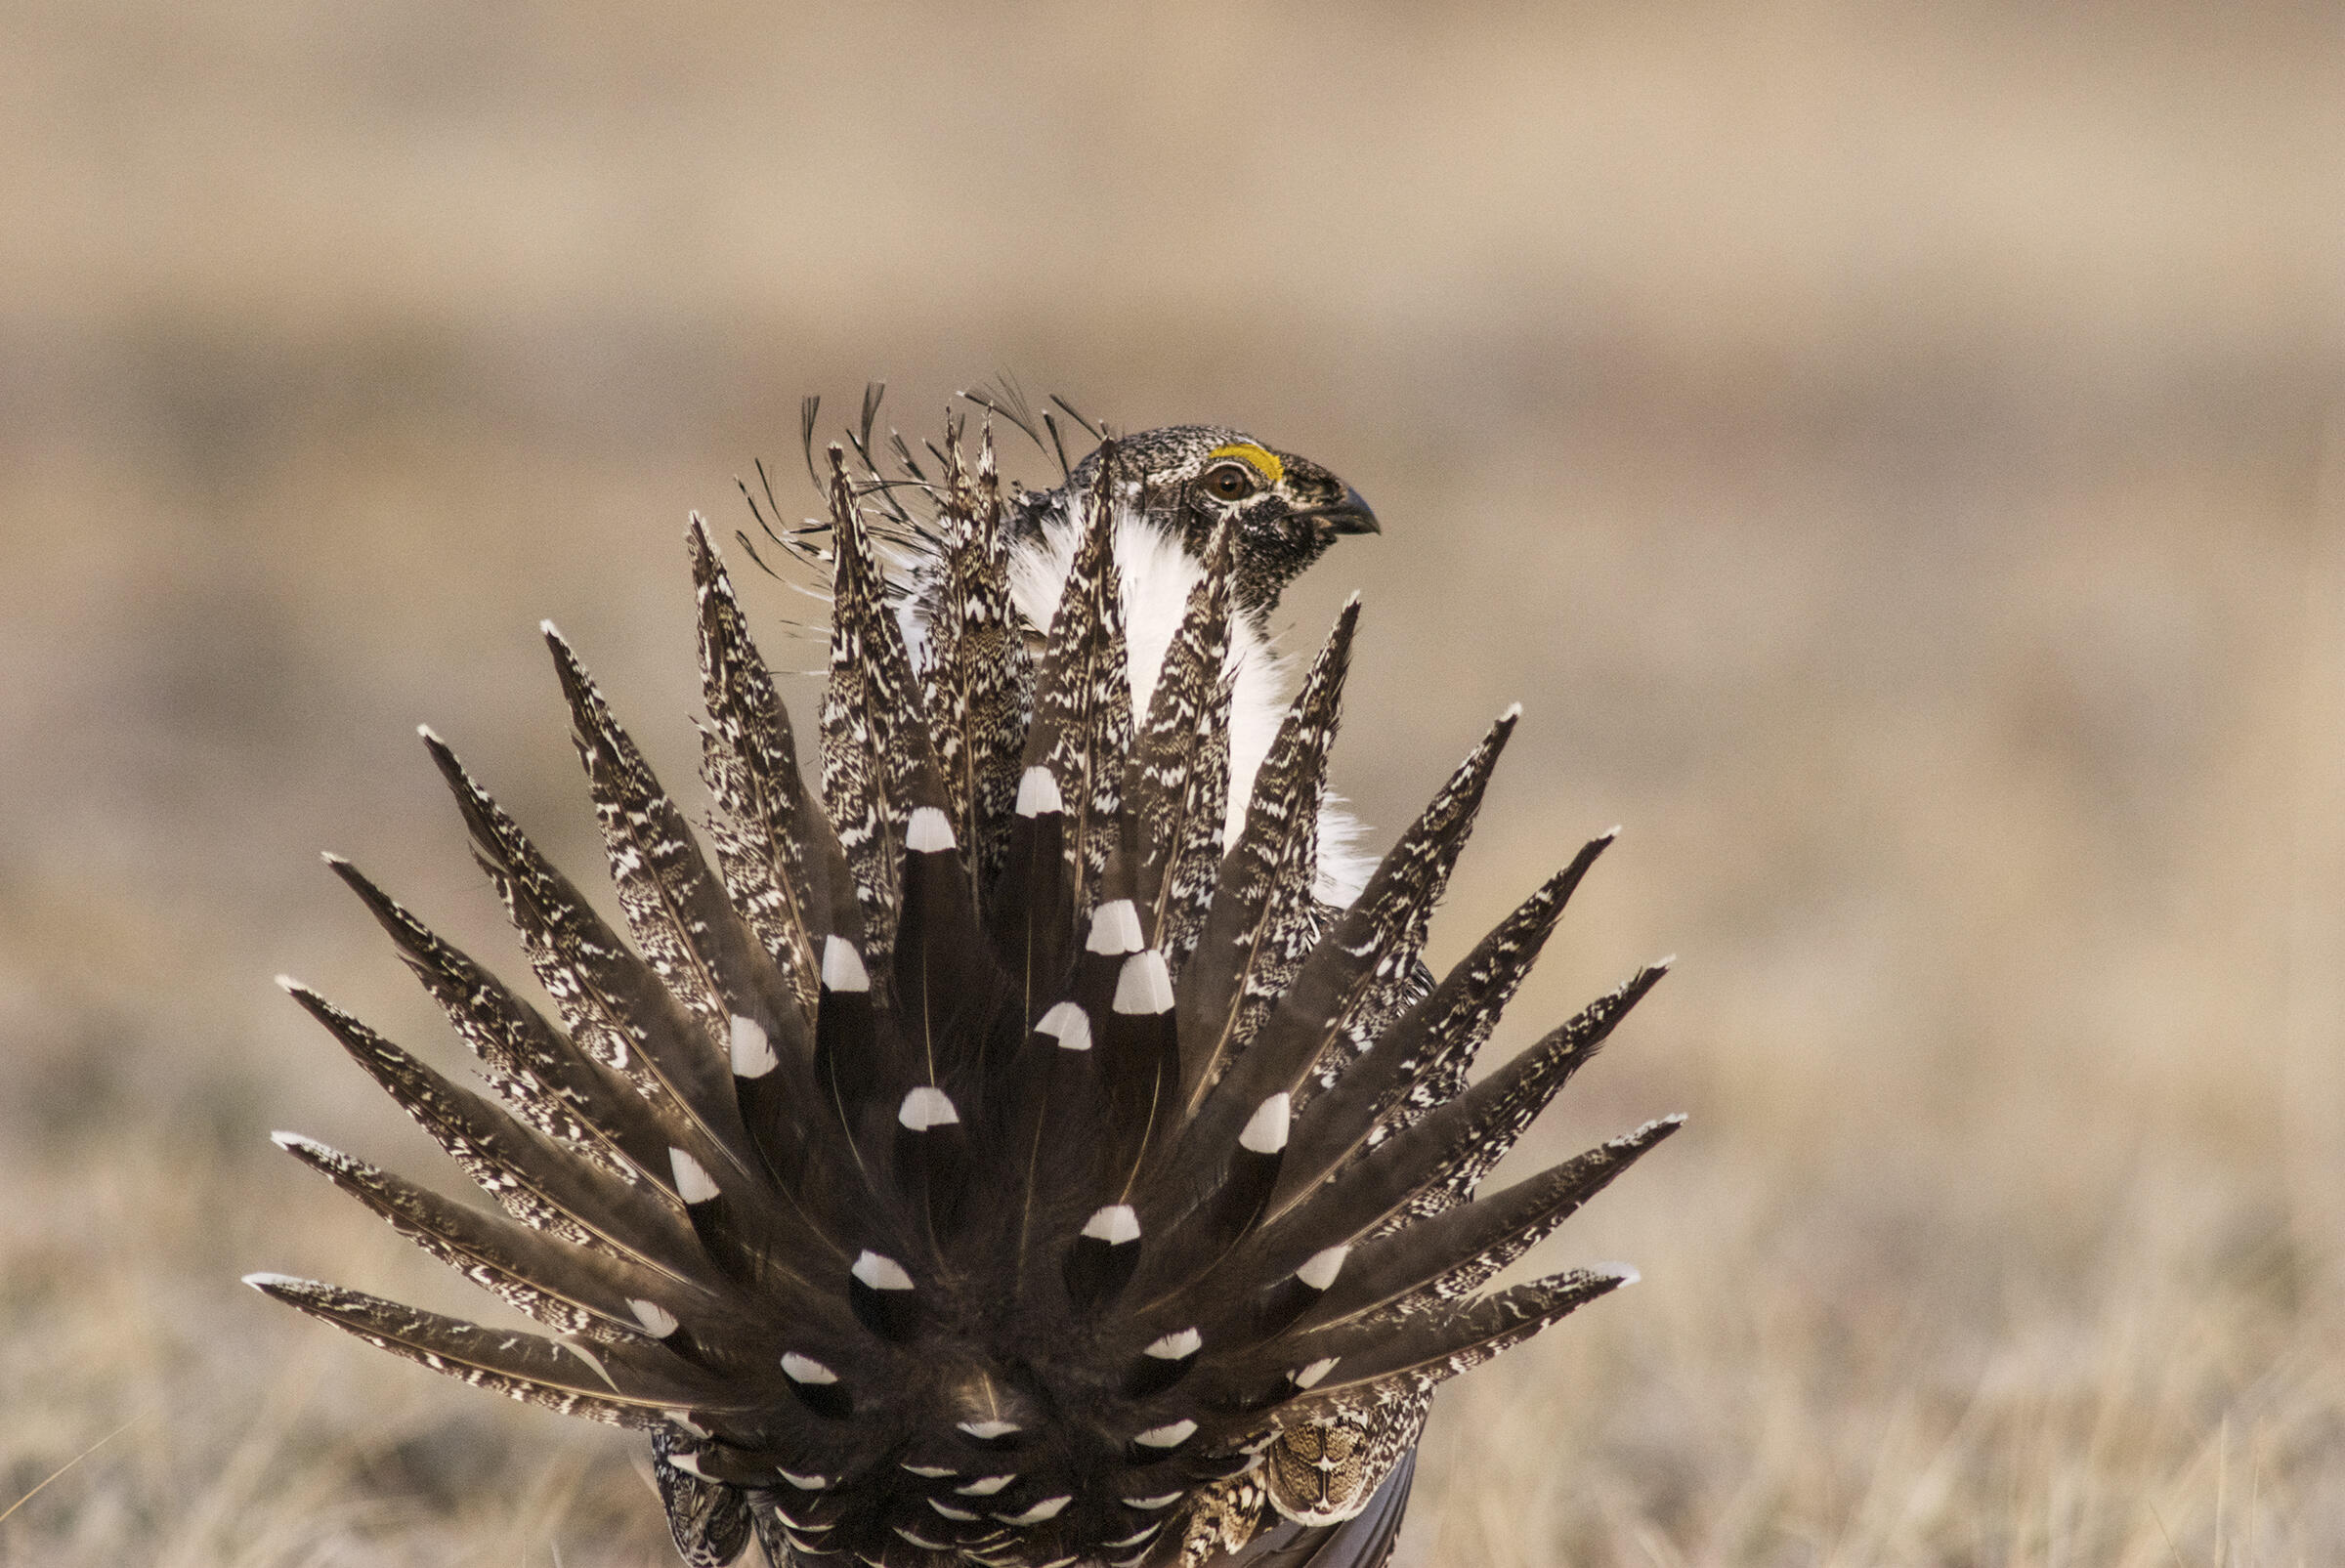 Greater Sage-Grouse males fan spiky tail feathers while displaying to impress females. Sublette County, Wyoming. Dave Showalter